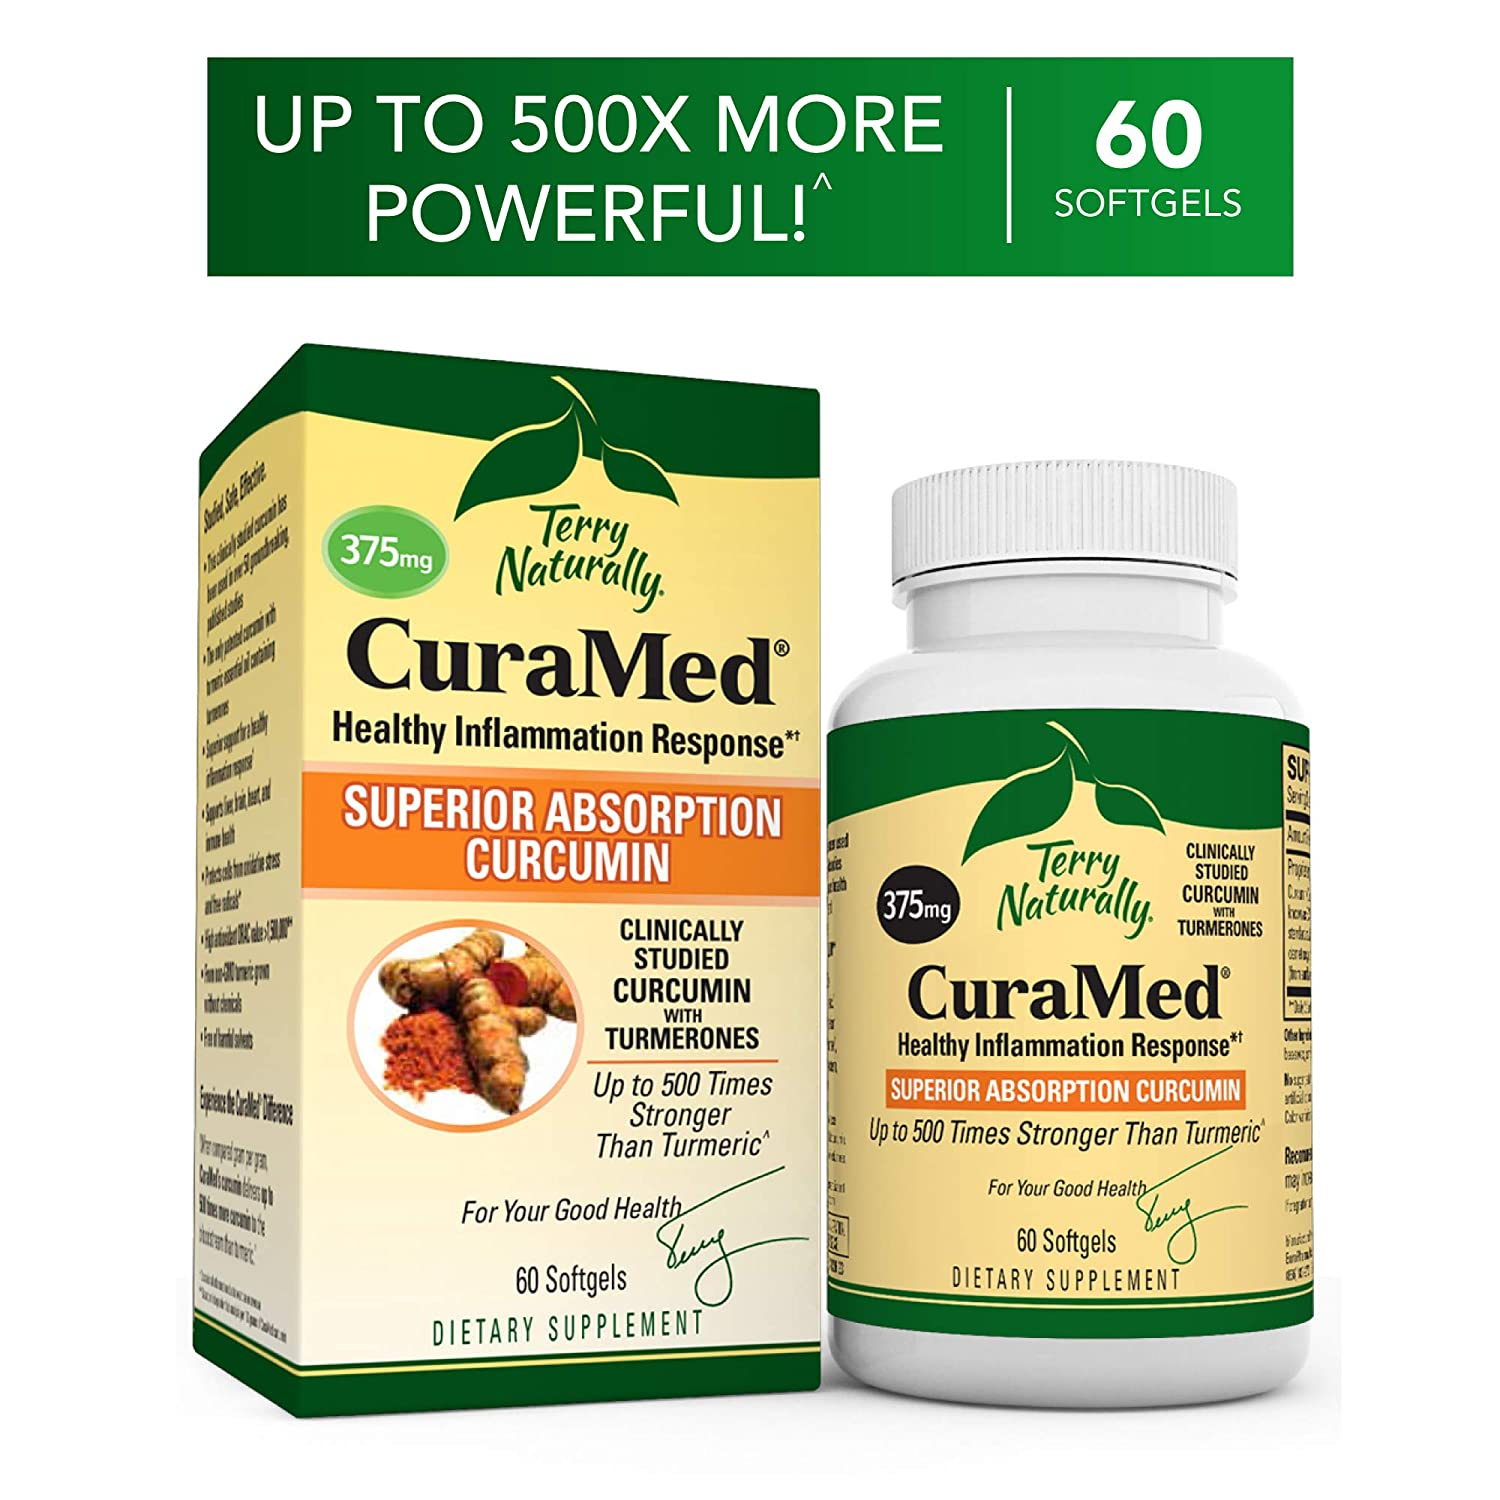 Terry Naturally CuraMed 375 mg - 60 Softgels - Superior Absorption BCM-95  Curcumin Supplement,